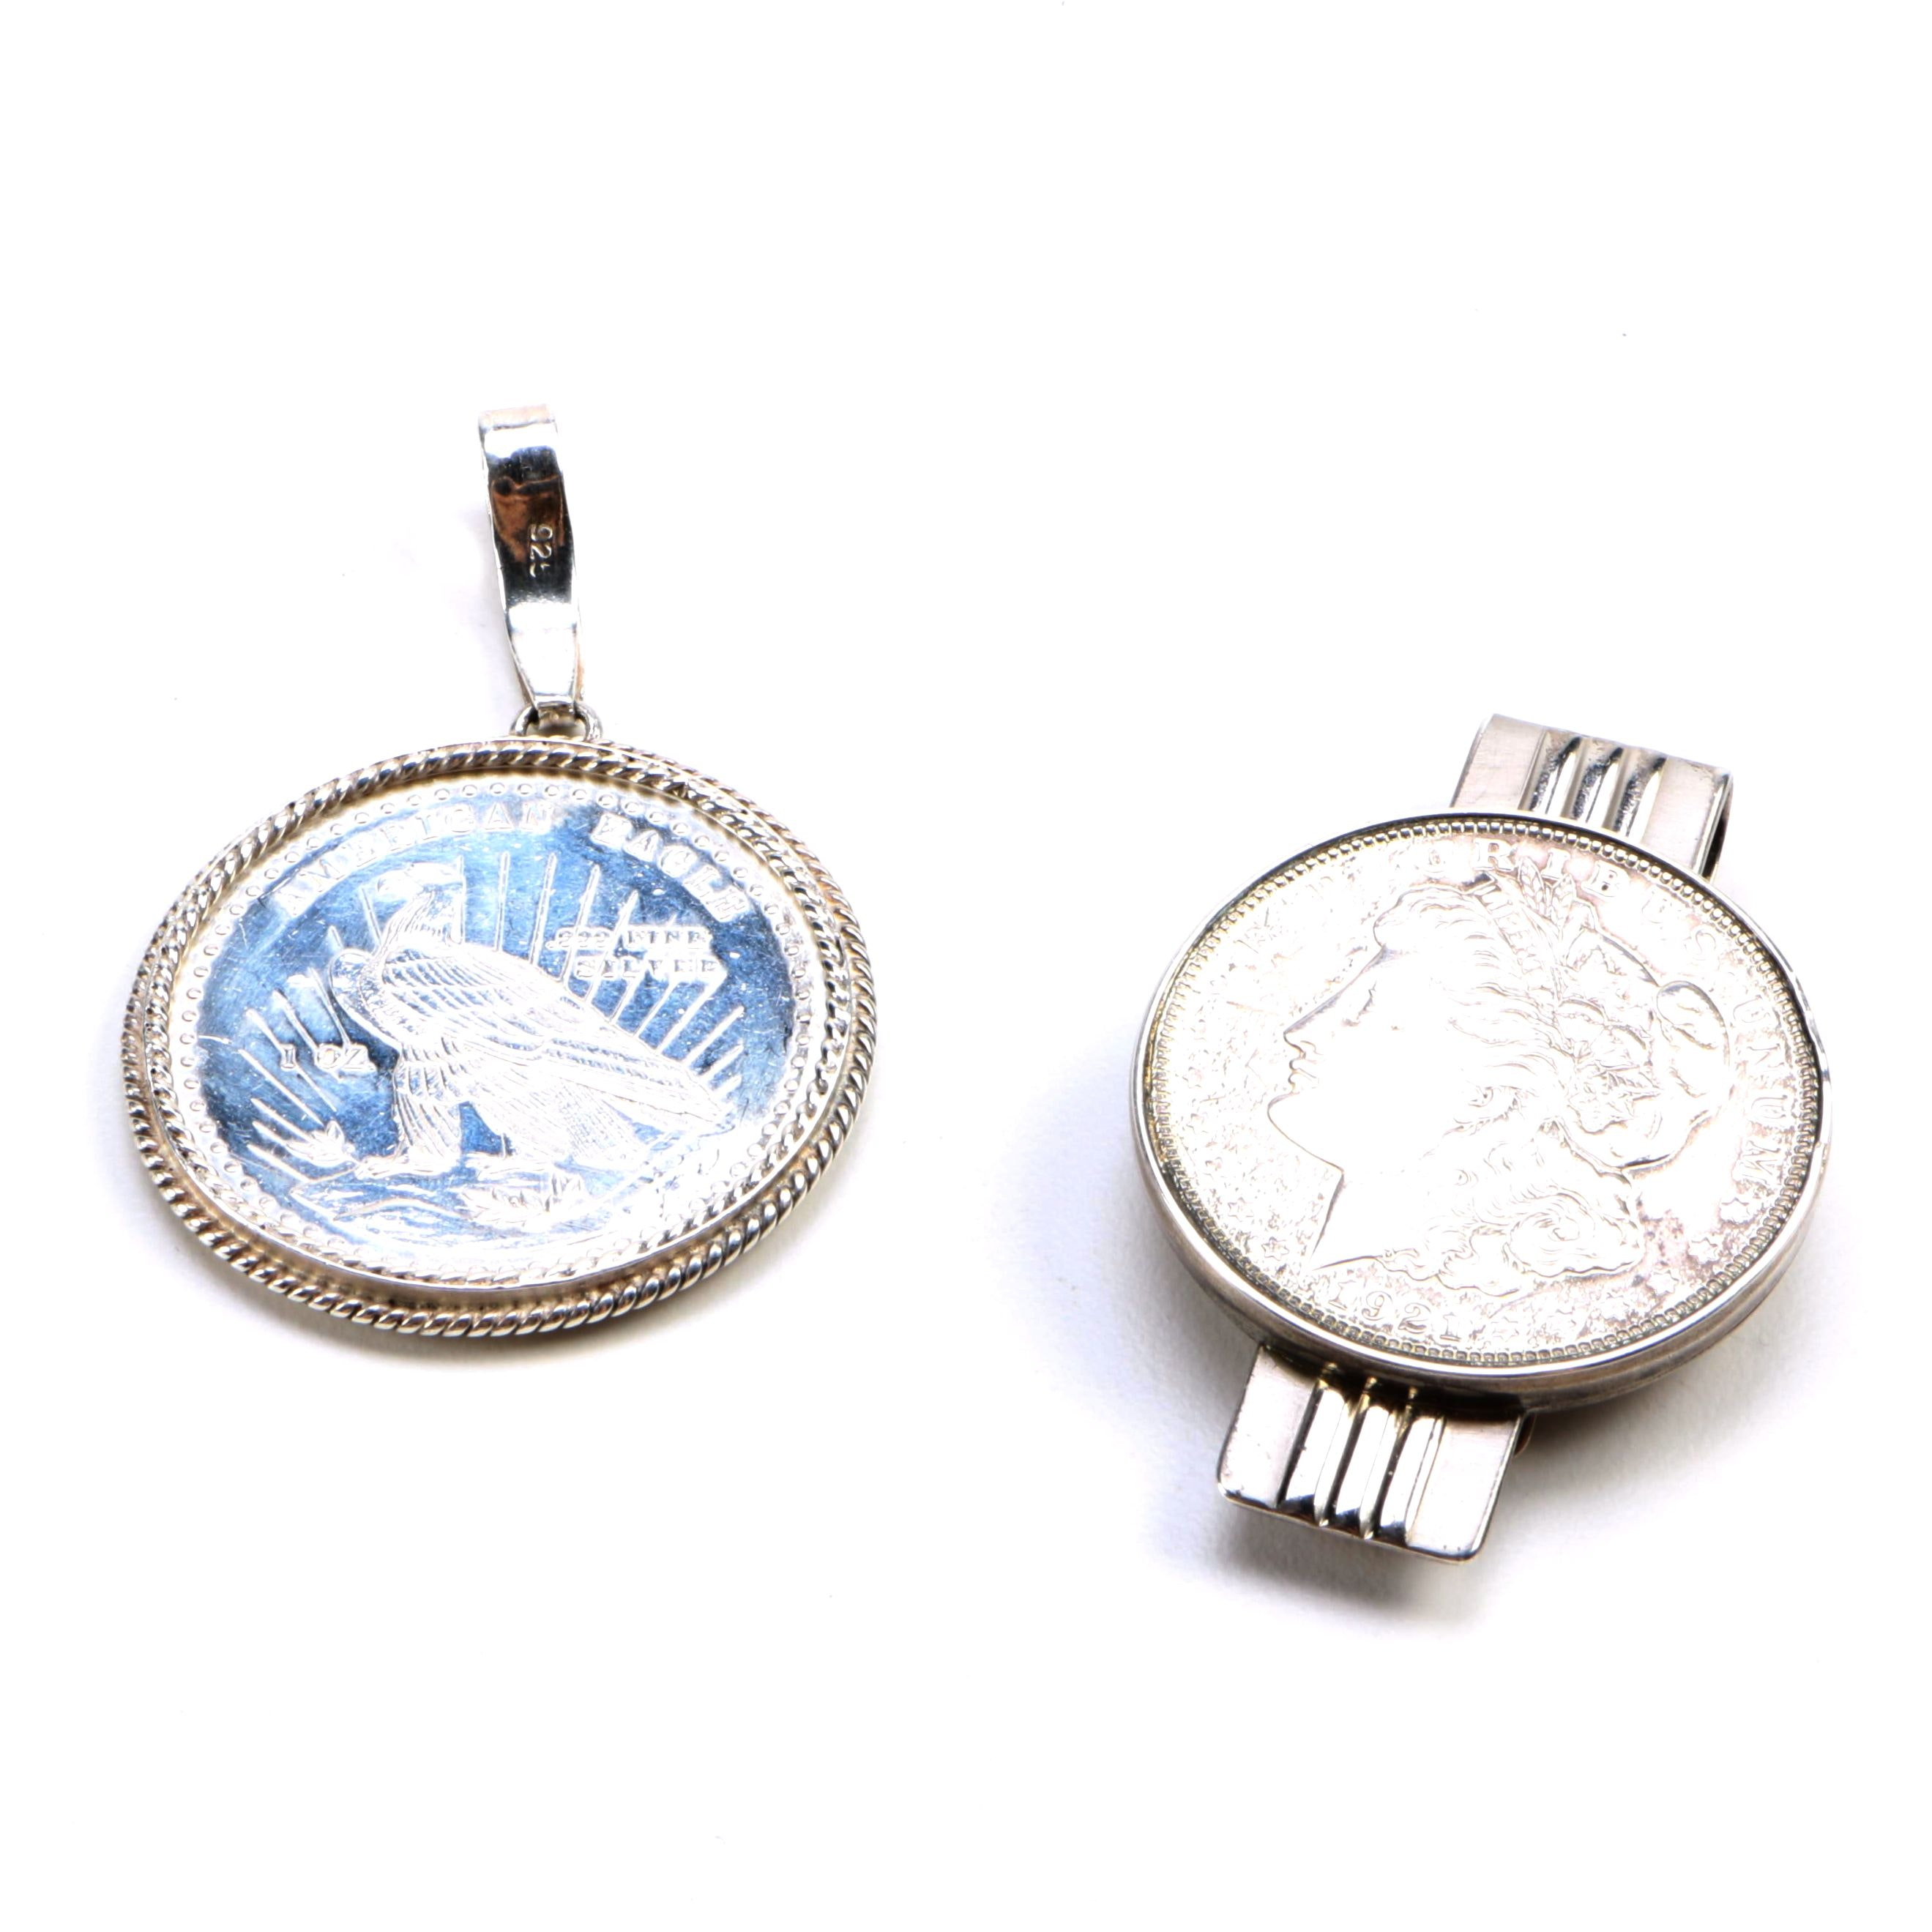 Sterling Silver Pendant and Money Clip With Coins